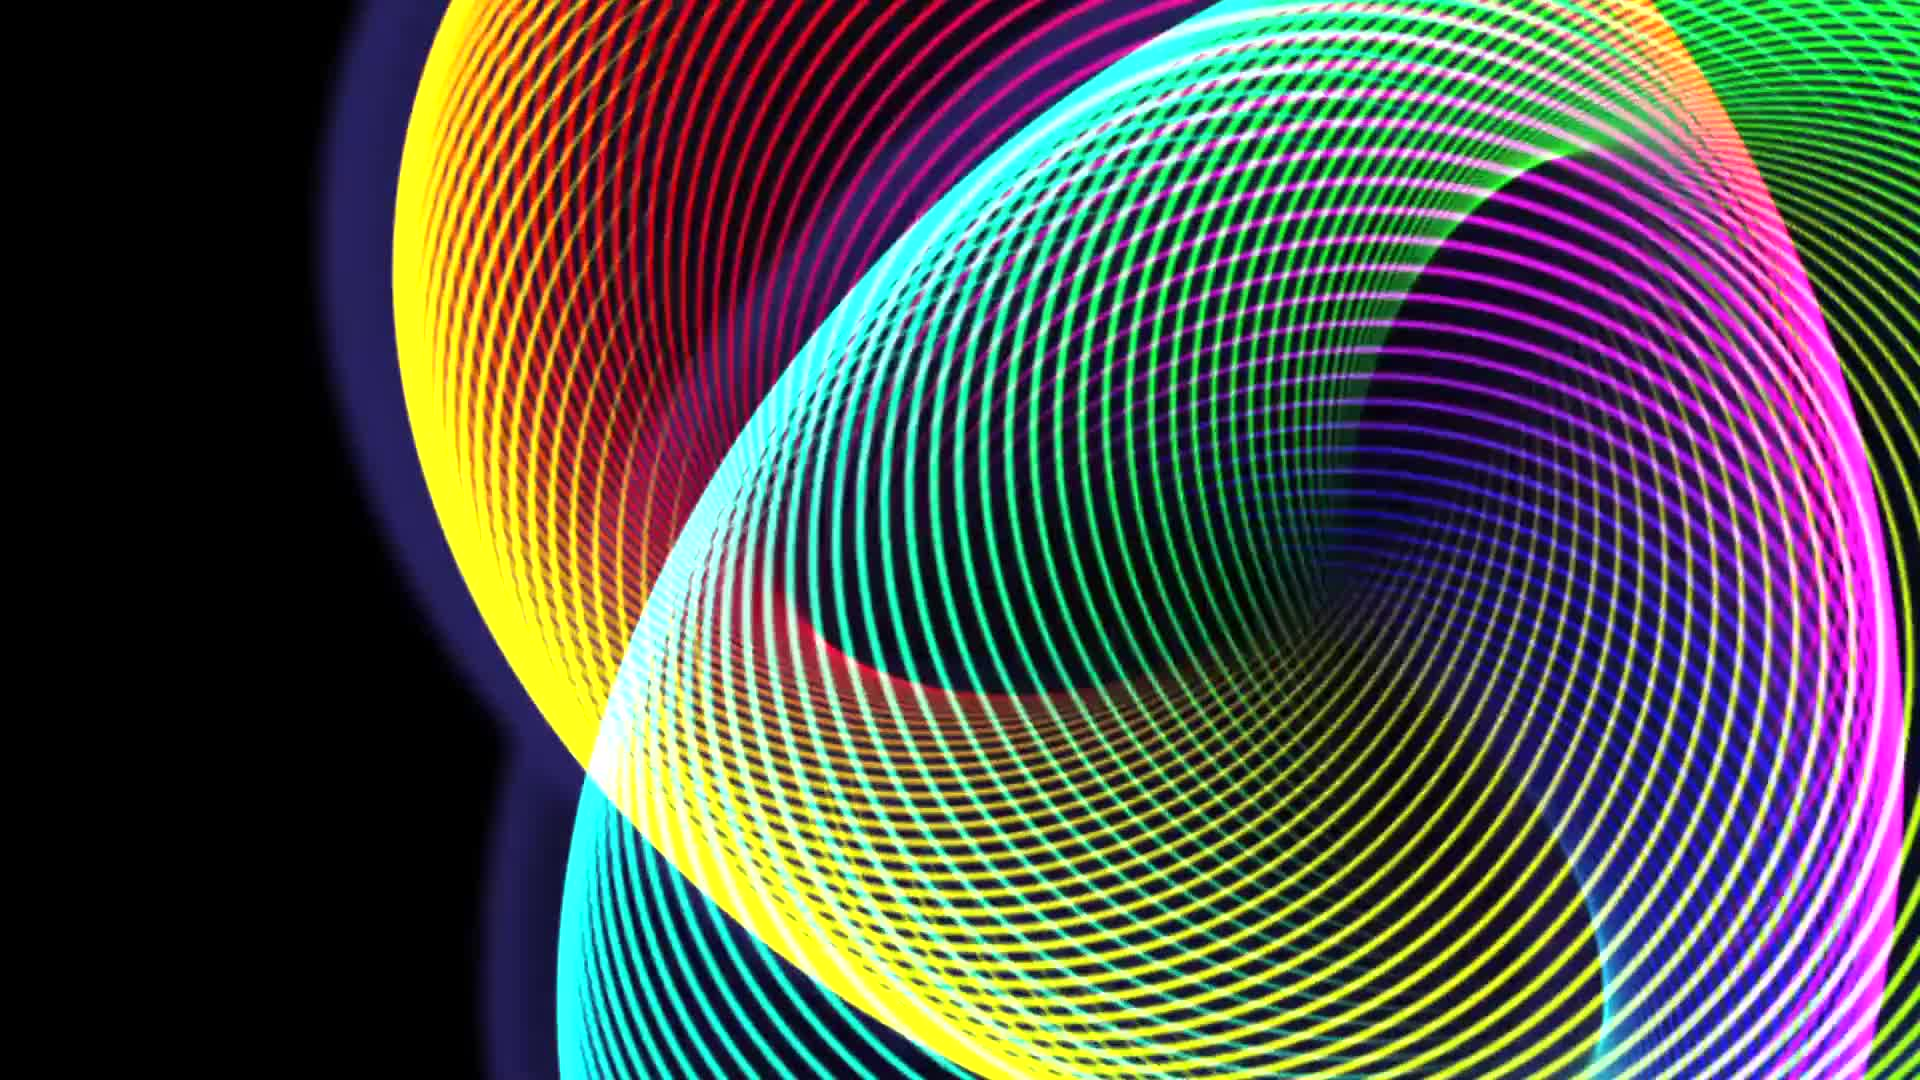 Rings circle lines abstract colorful